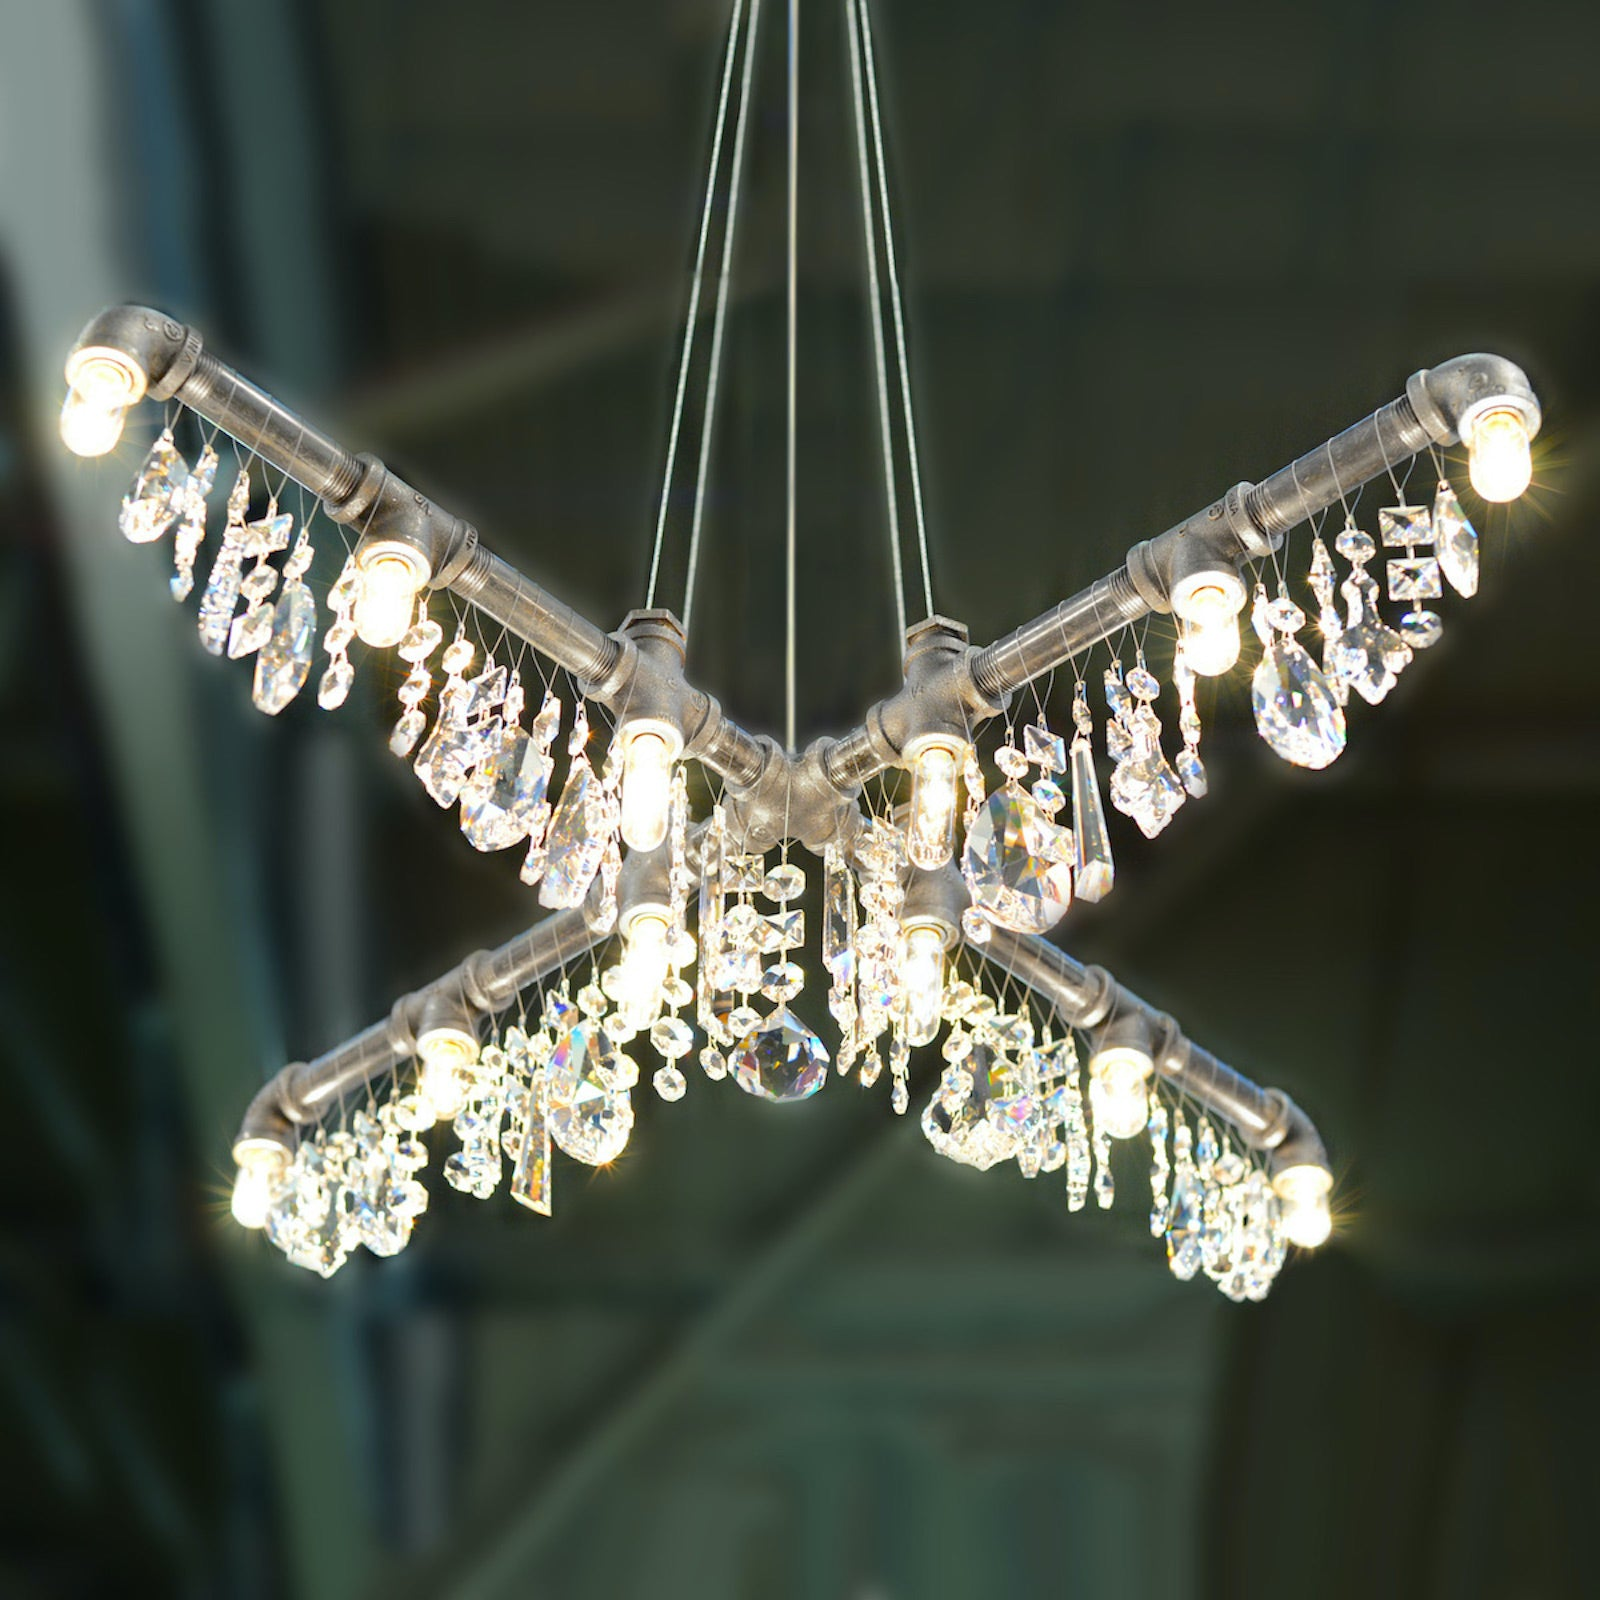 The Tribeca X-Chandelier Pendant